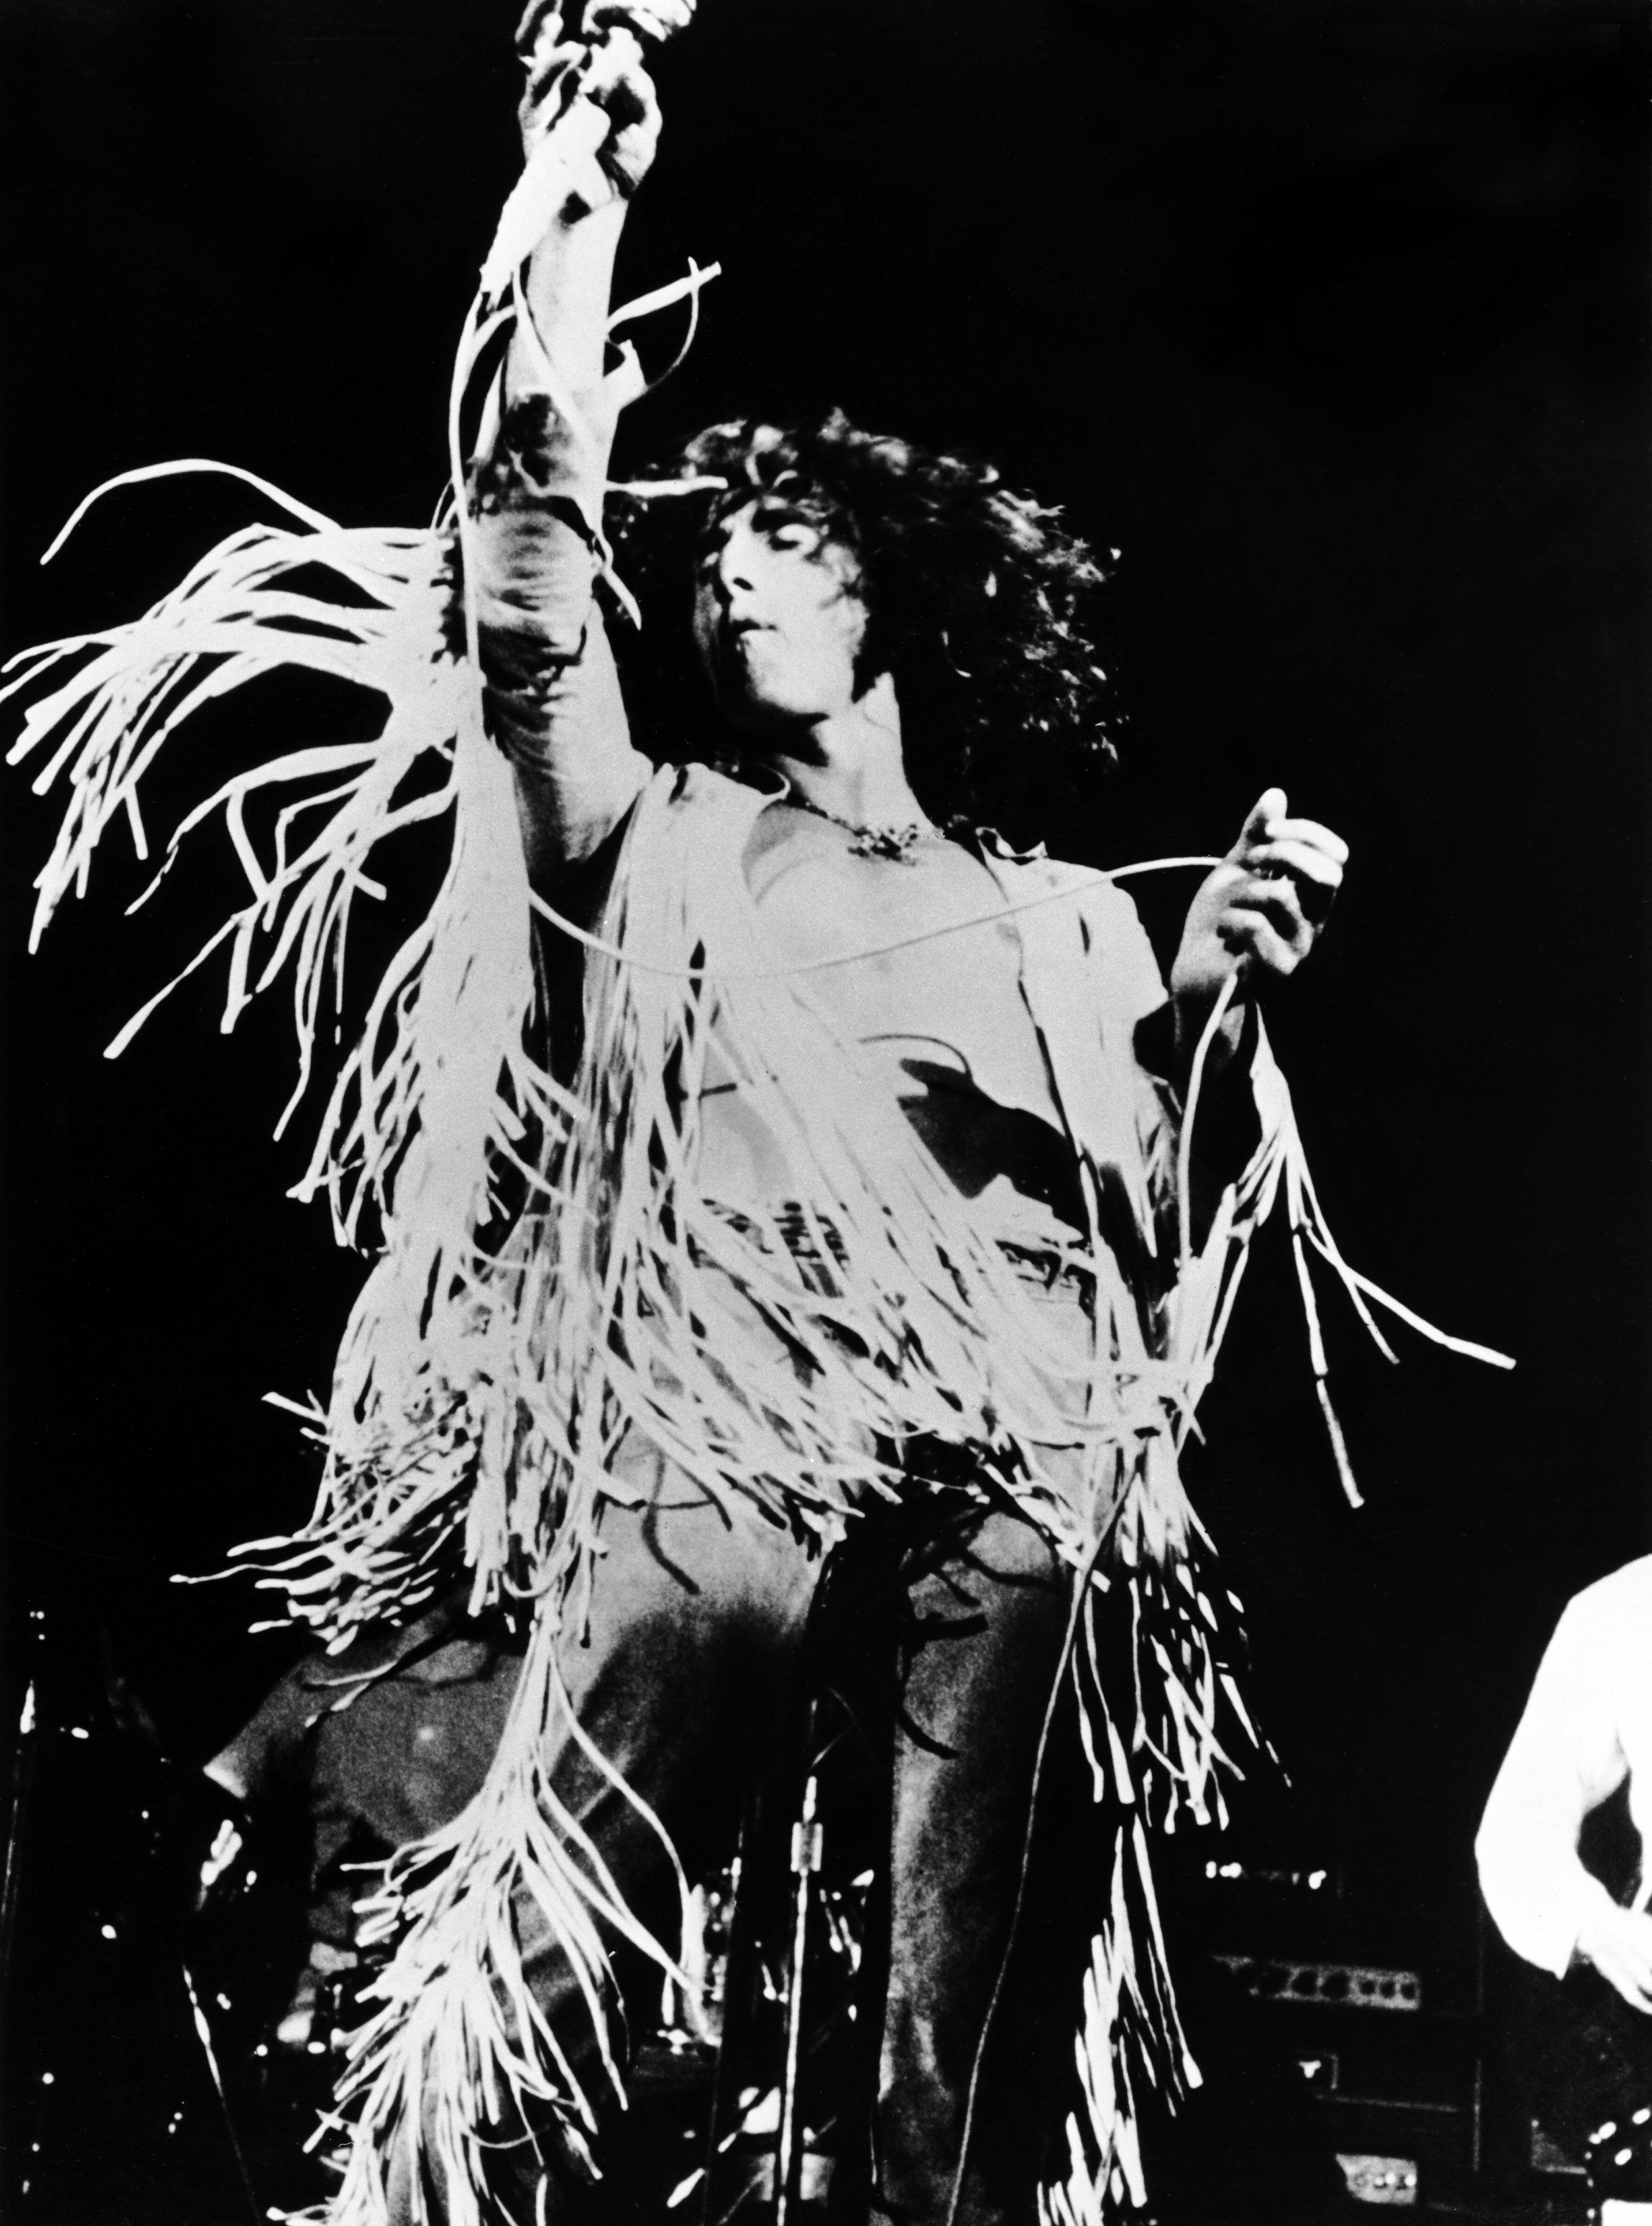 The Who's Roger Daltrey performing at Woodstock in 1969